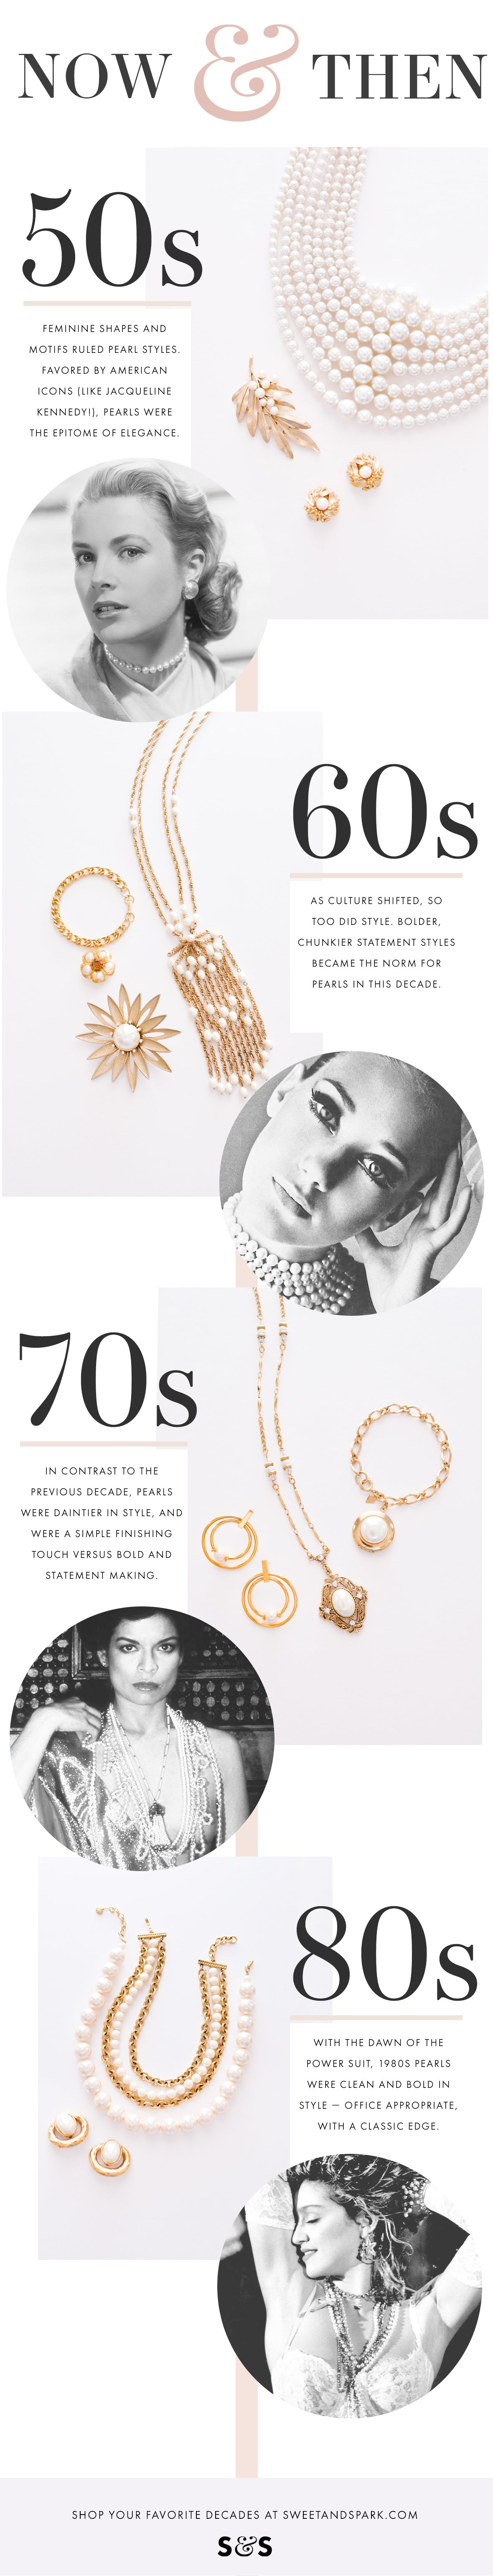 The history of pearls by the decade from Sweet & Spark.